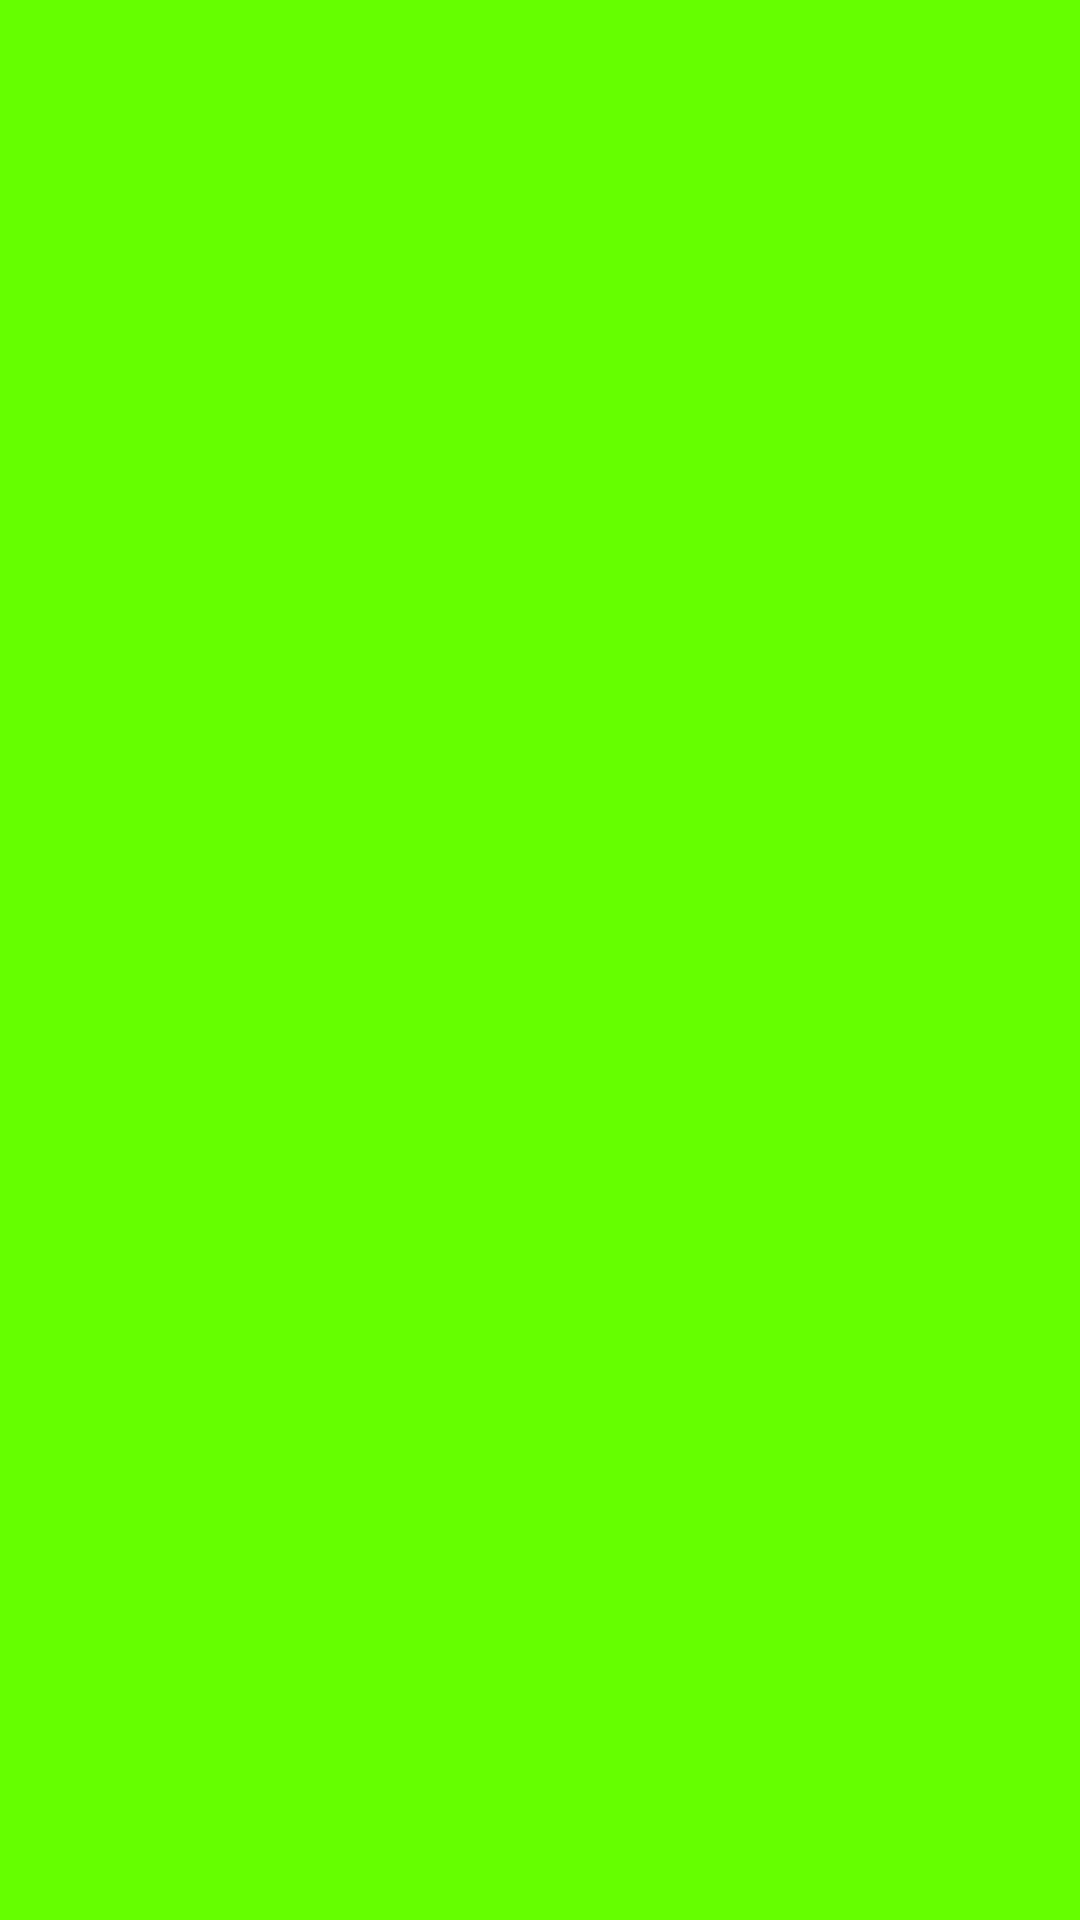 1080x1920 Bright Green Solid Color Background